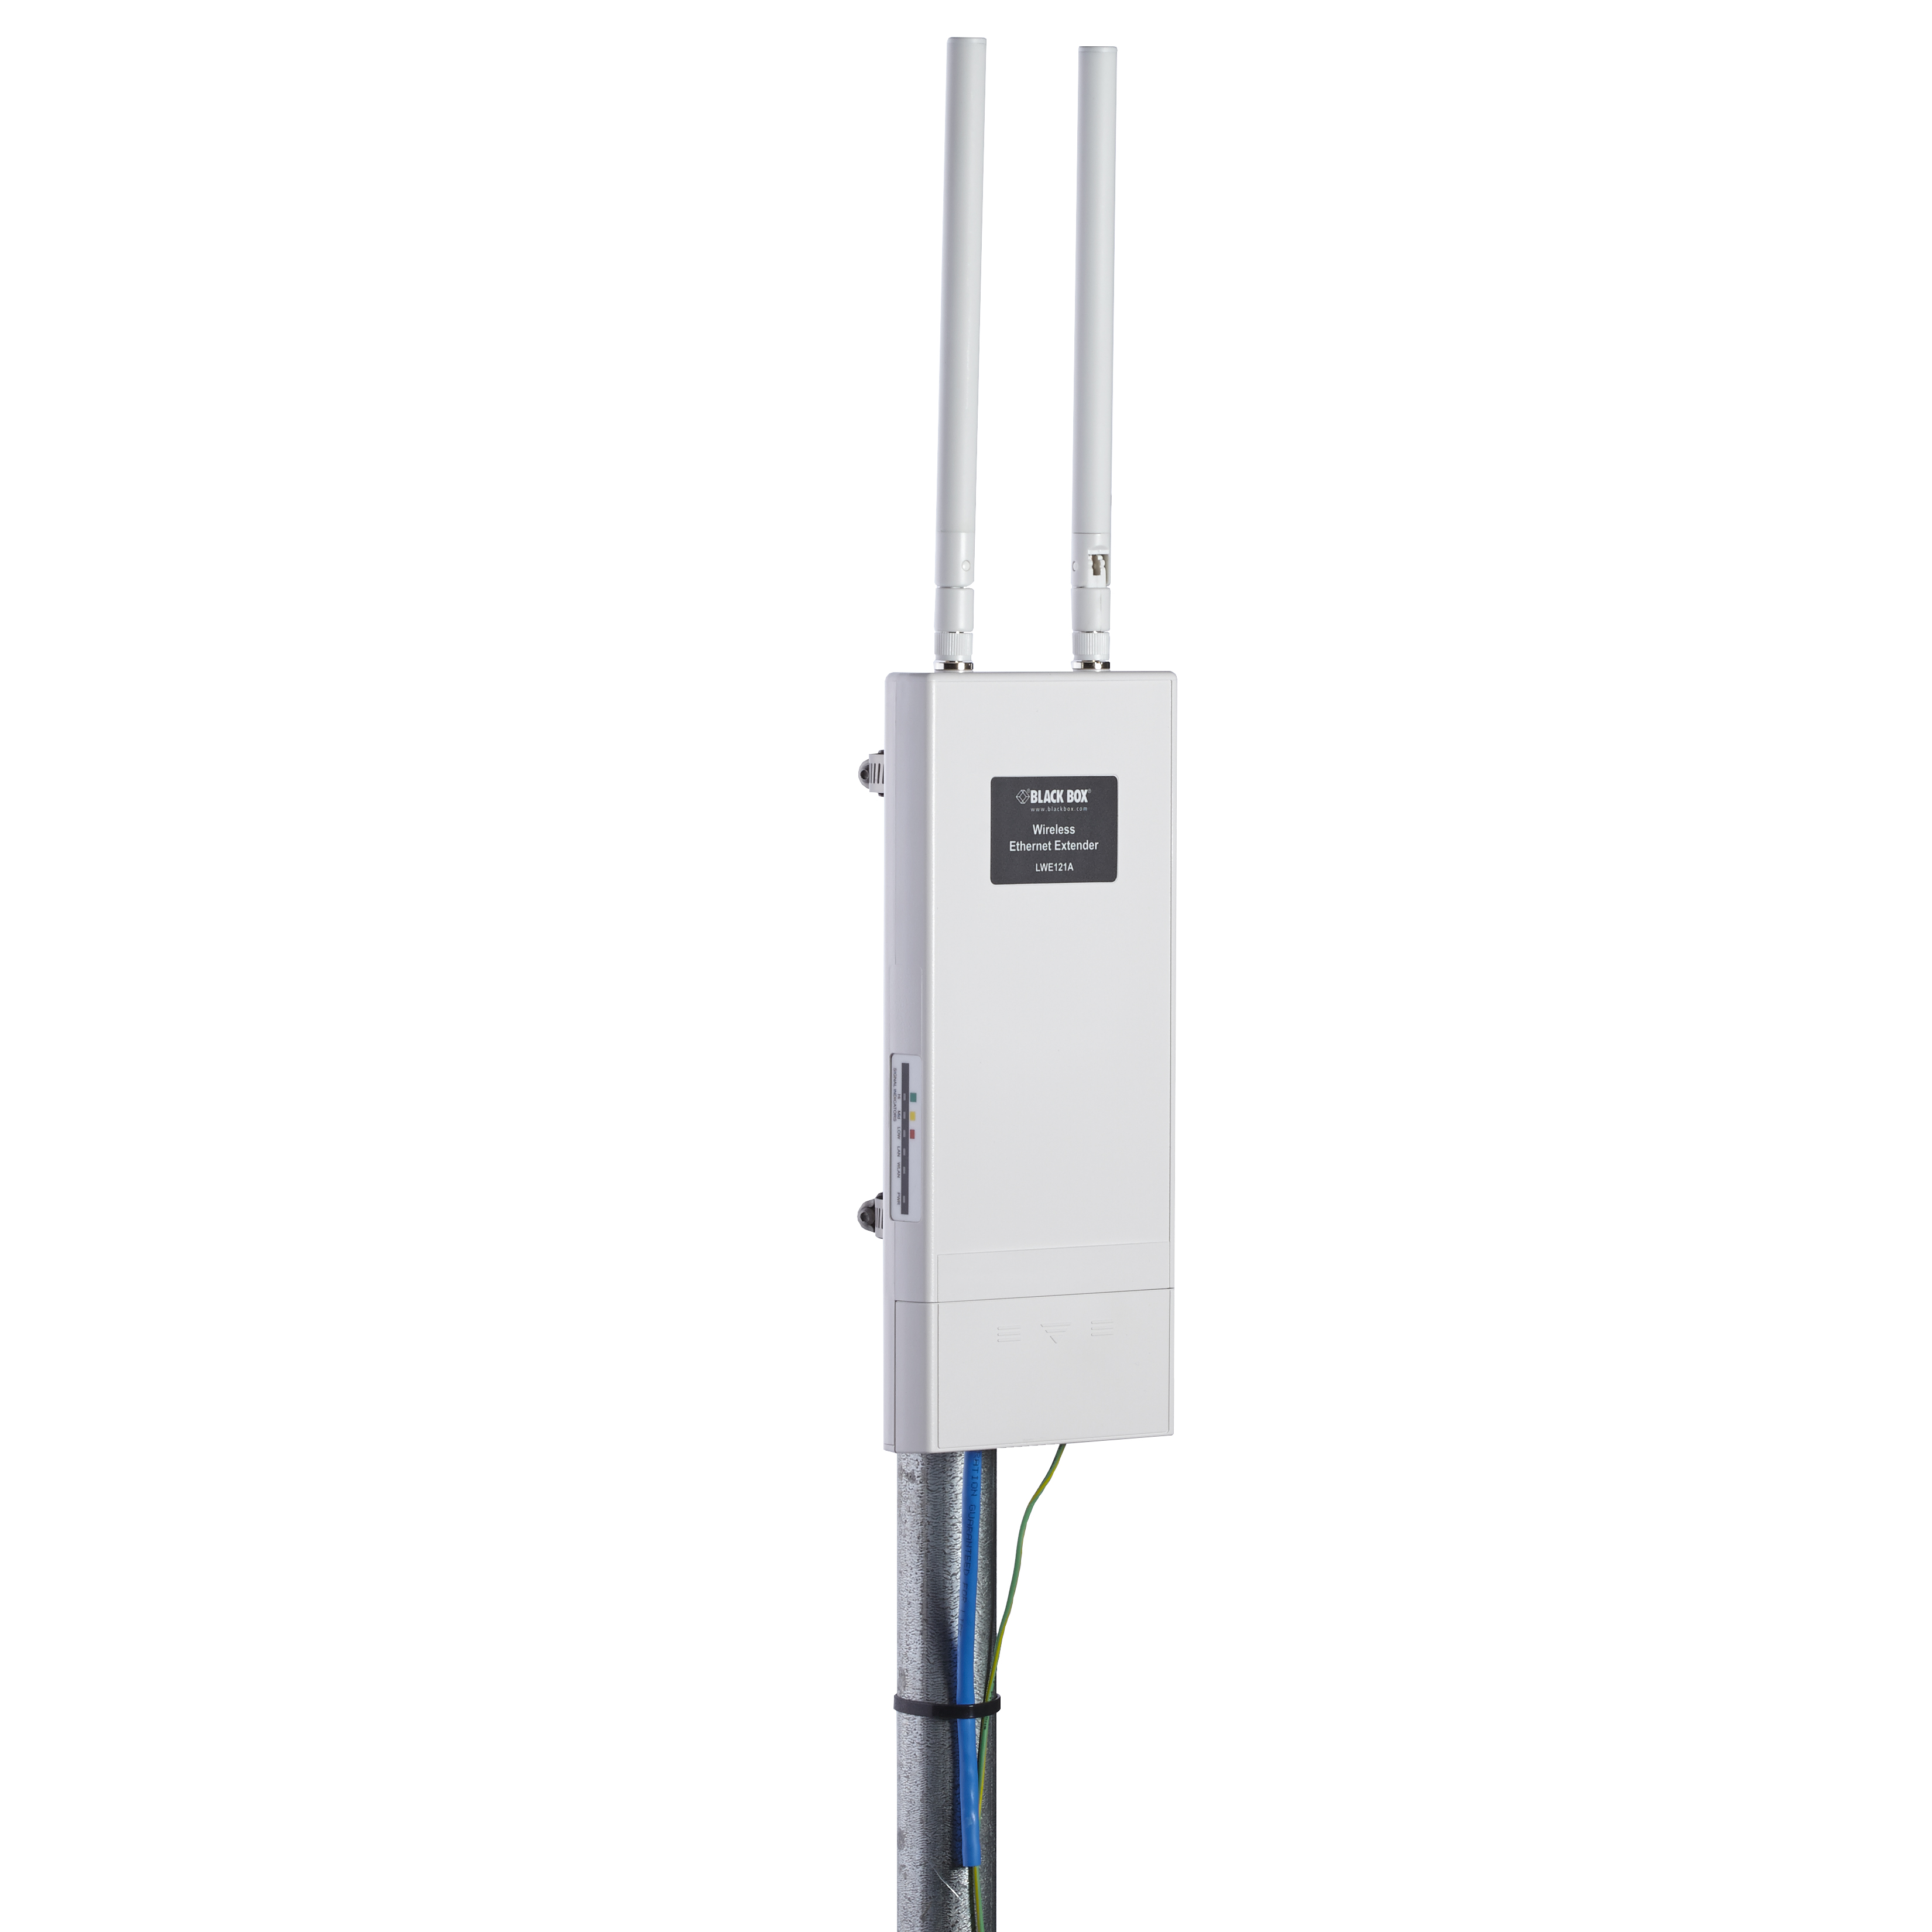 24 Ghz Wireless Point To Multipoint Ethernet Extender Access Wall Jack Wiring Additional Product Image